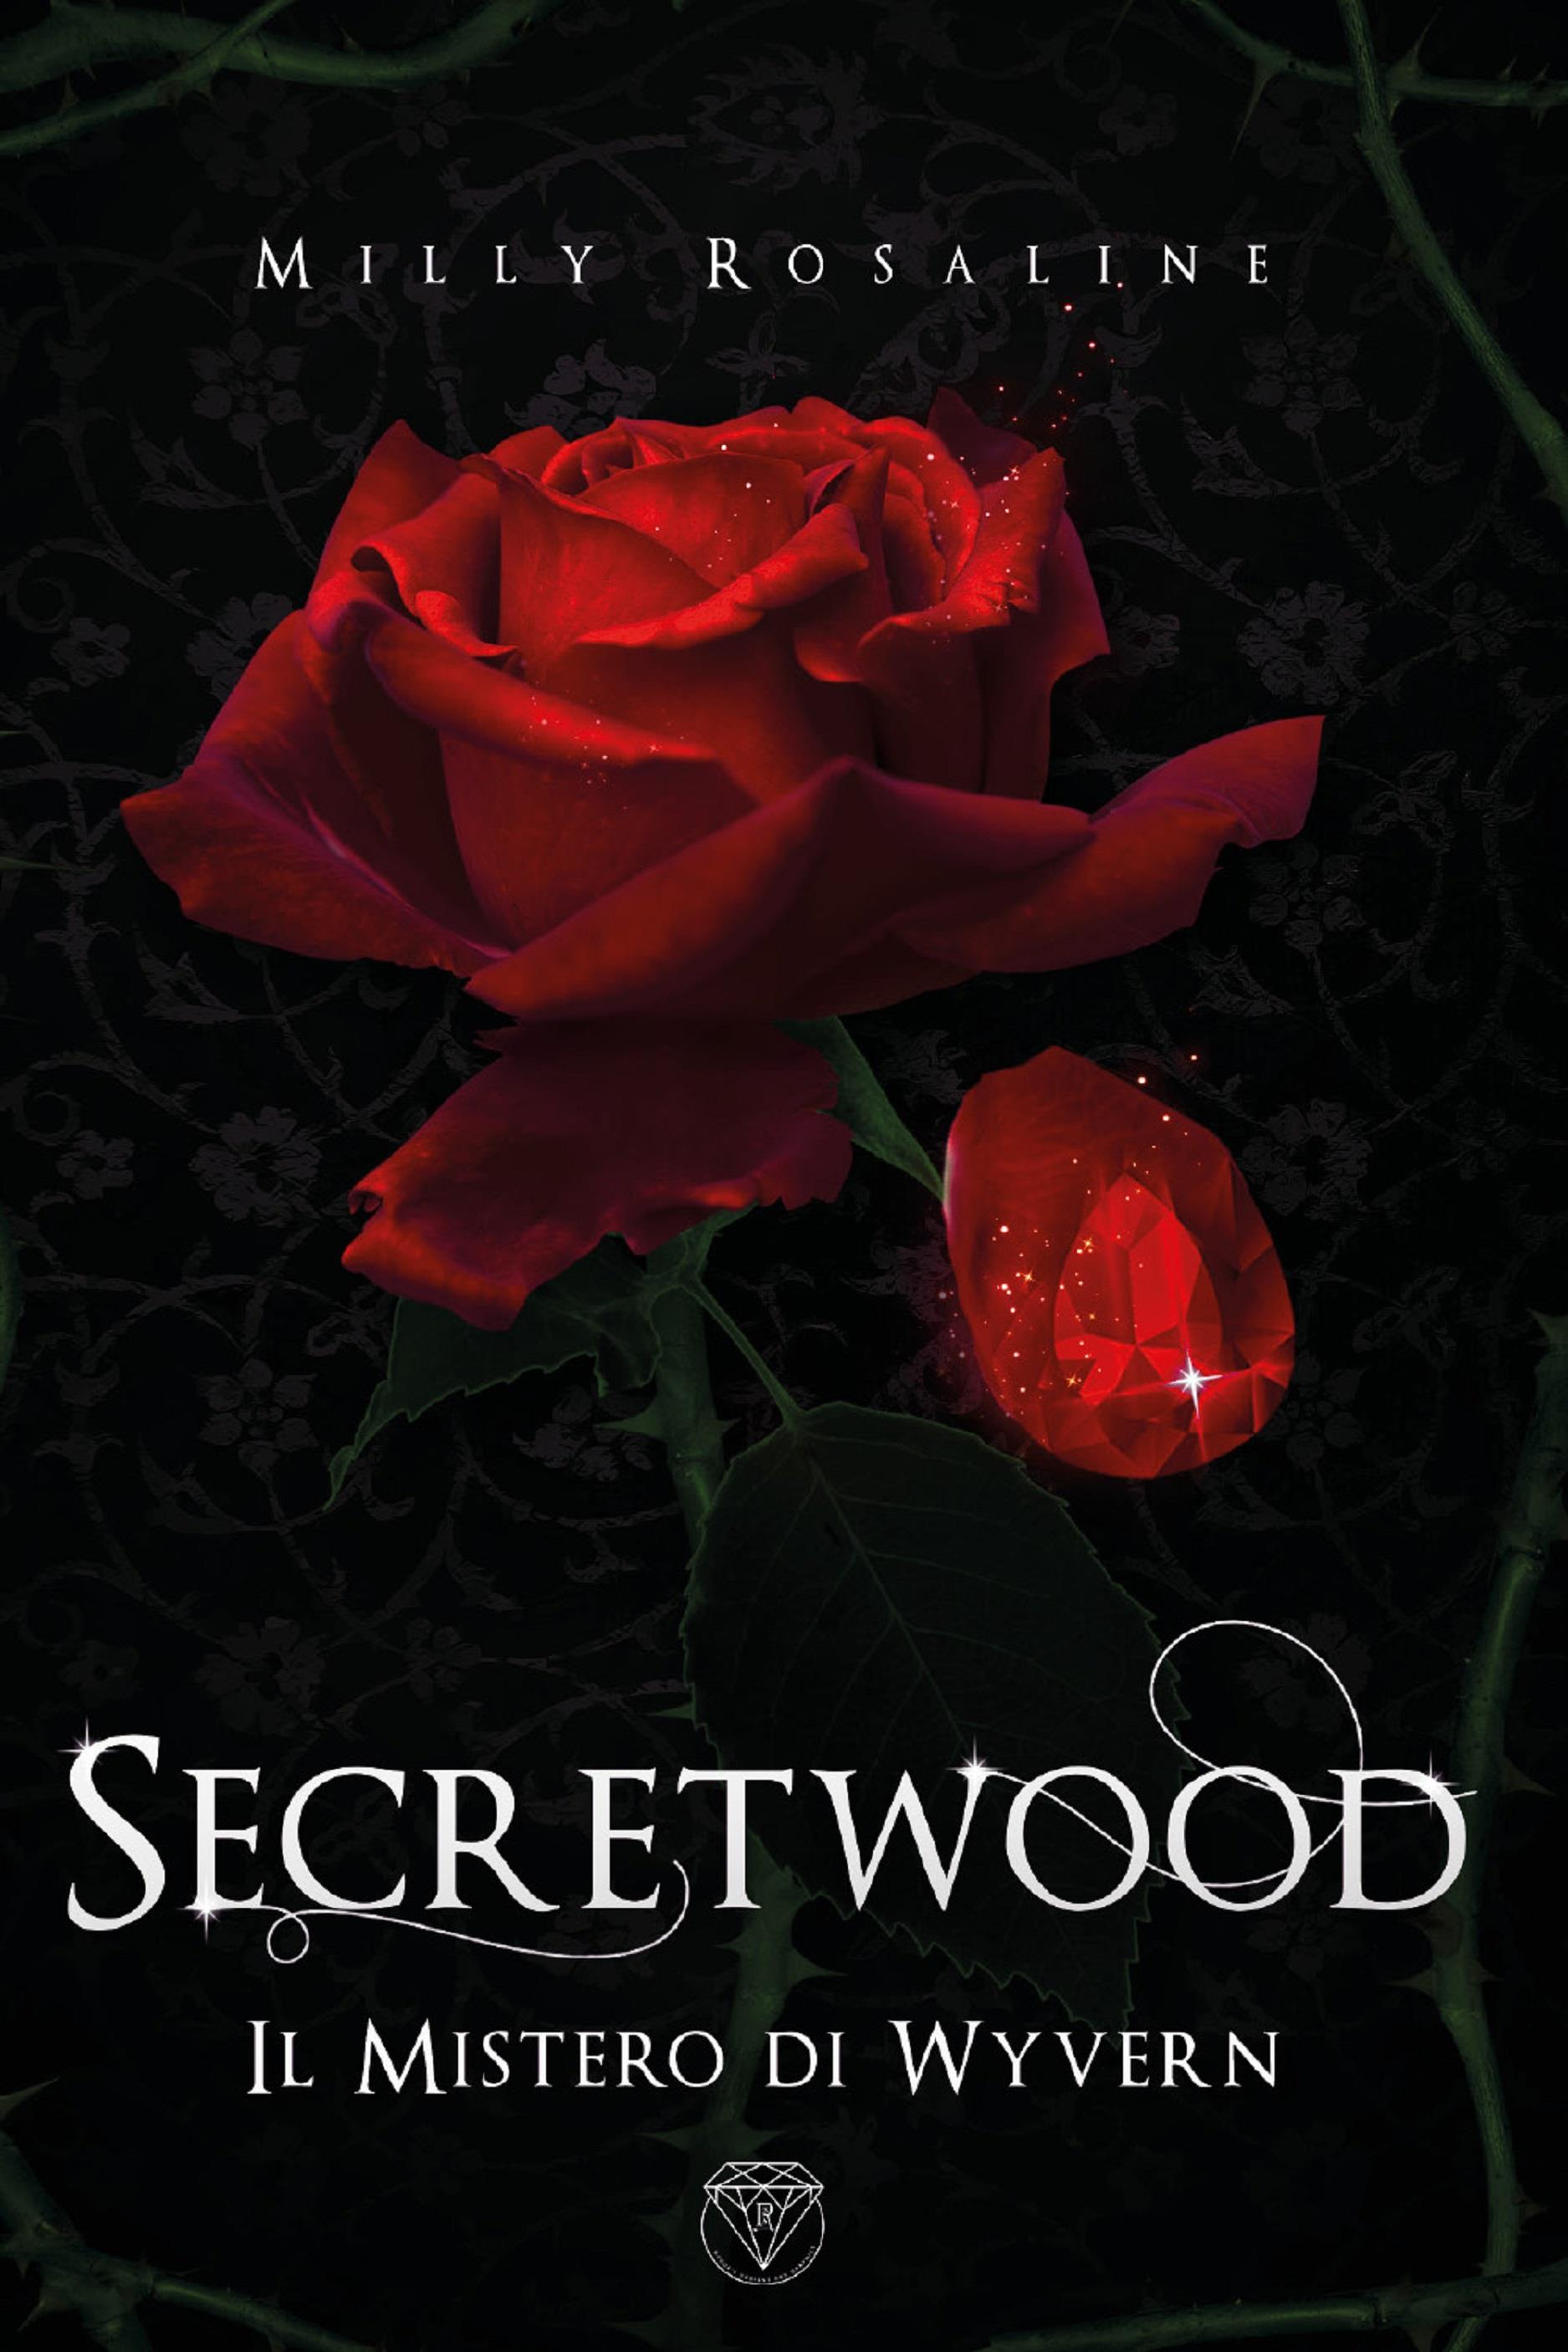 Secretwood